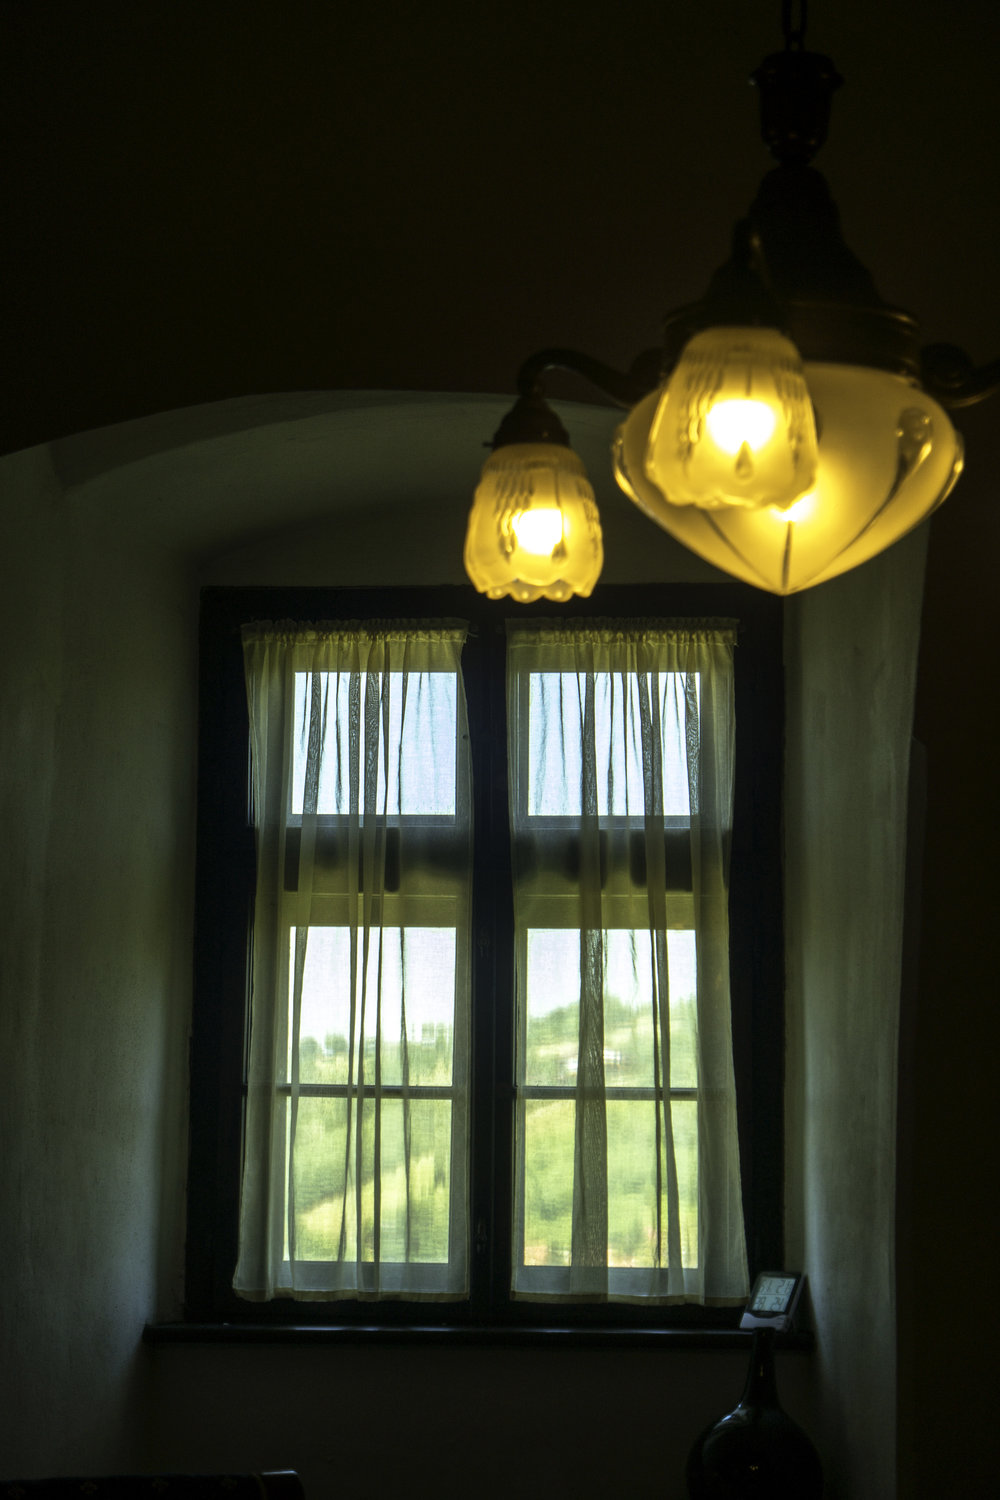 Bran-Castle-Romania-lights-window.jpg